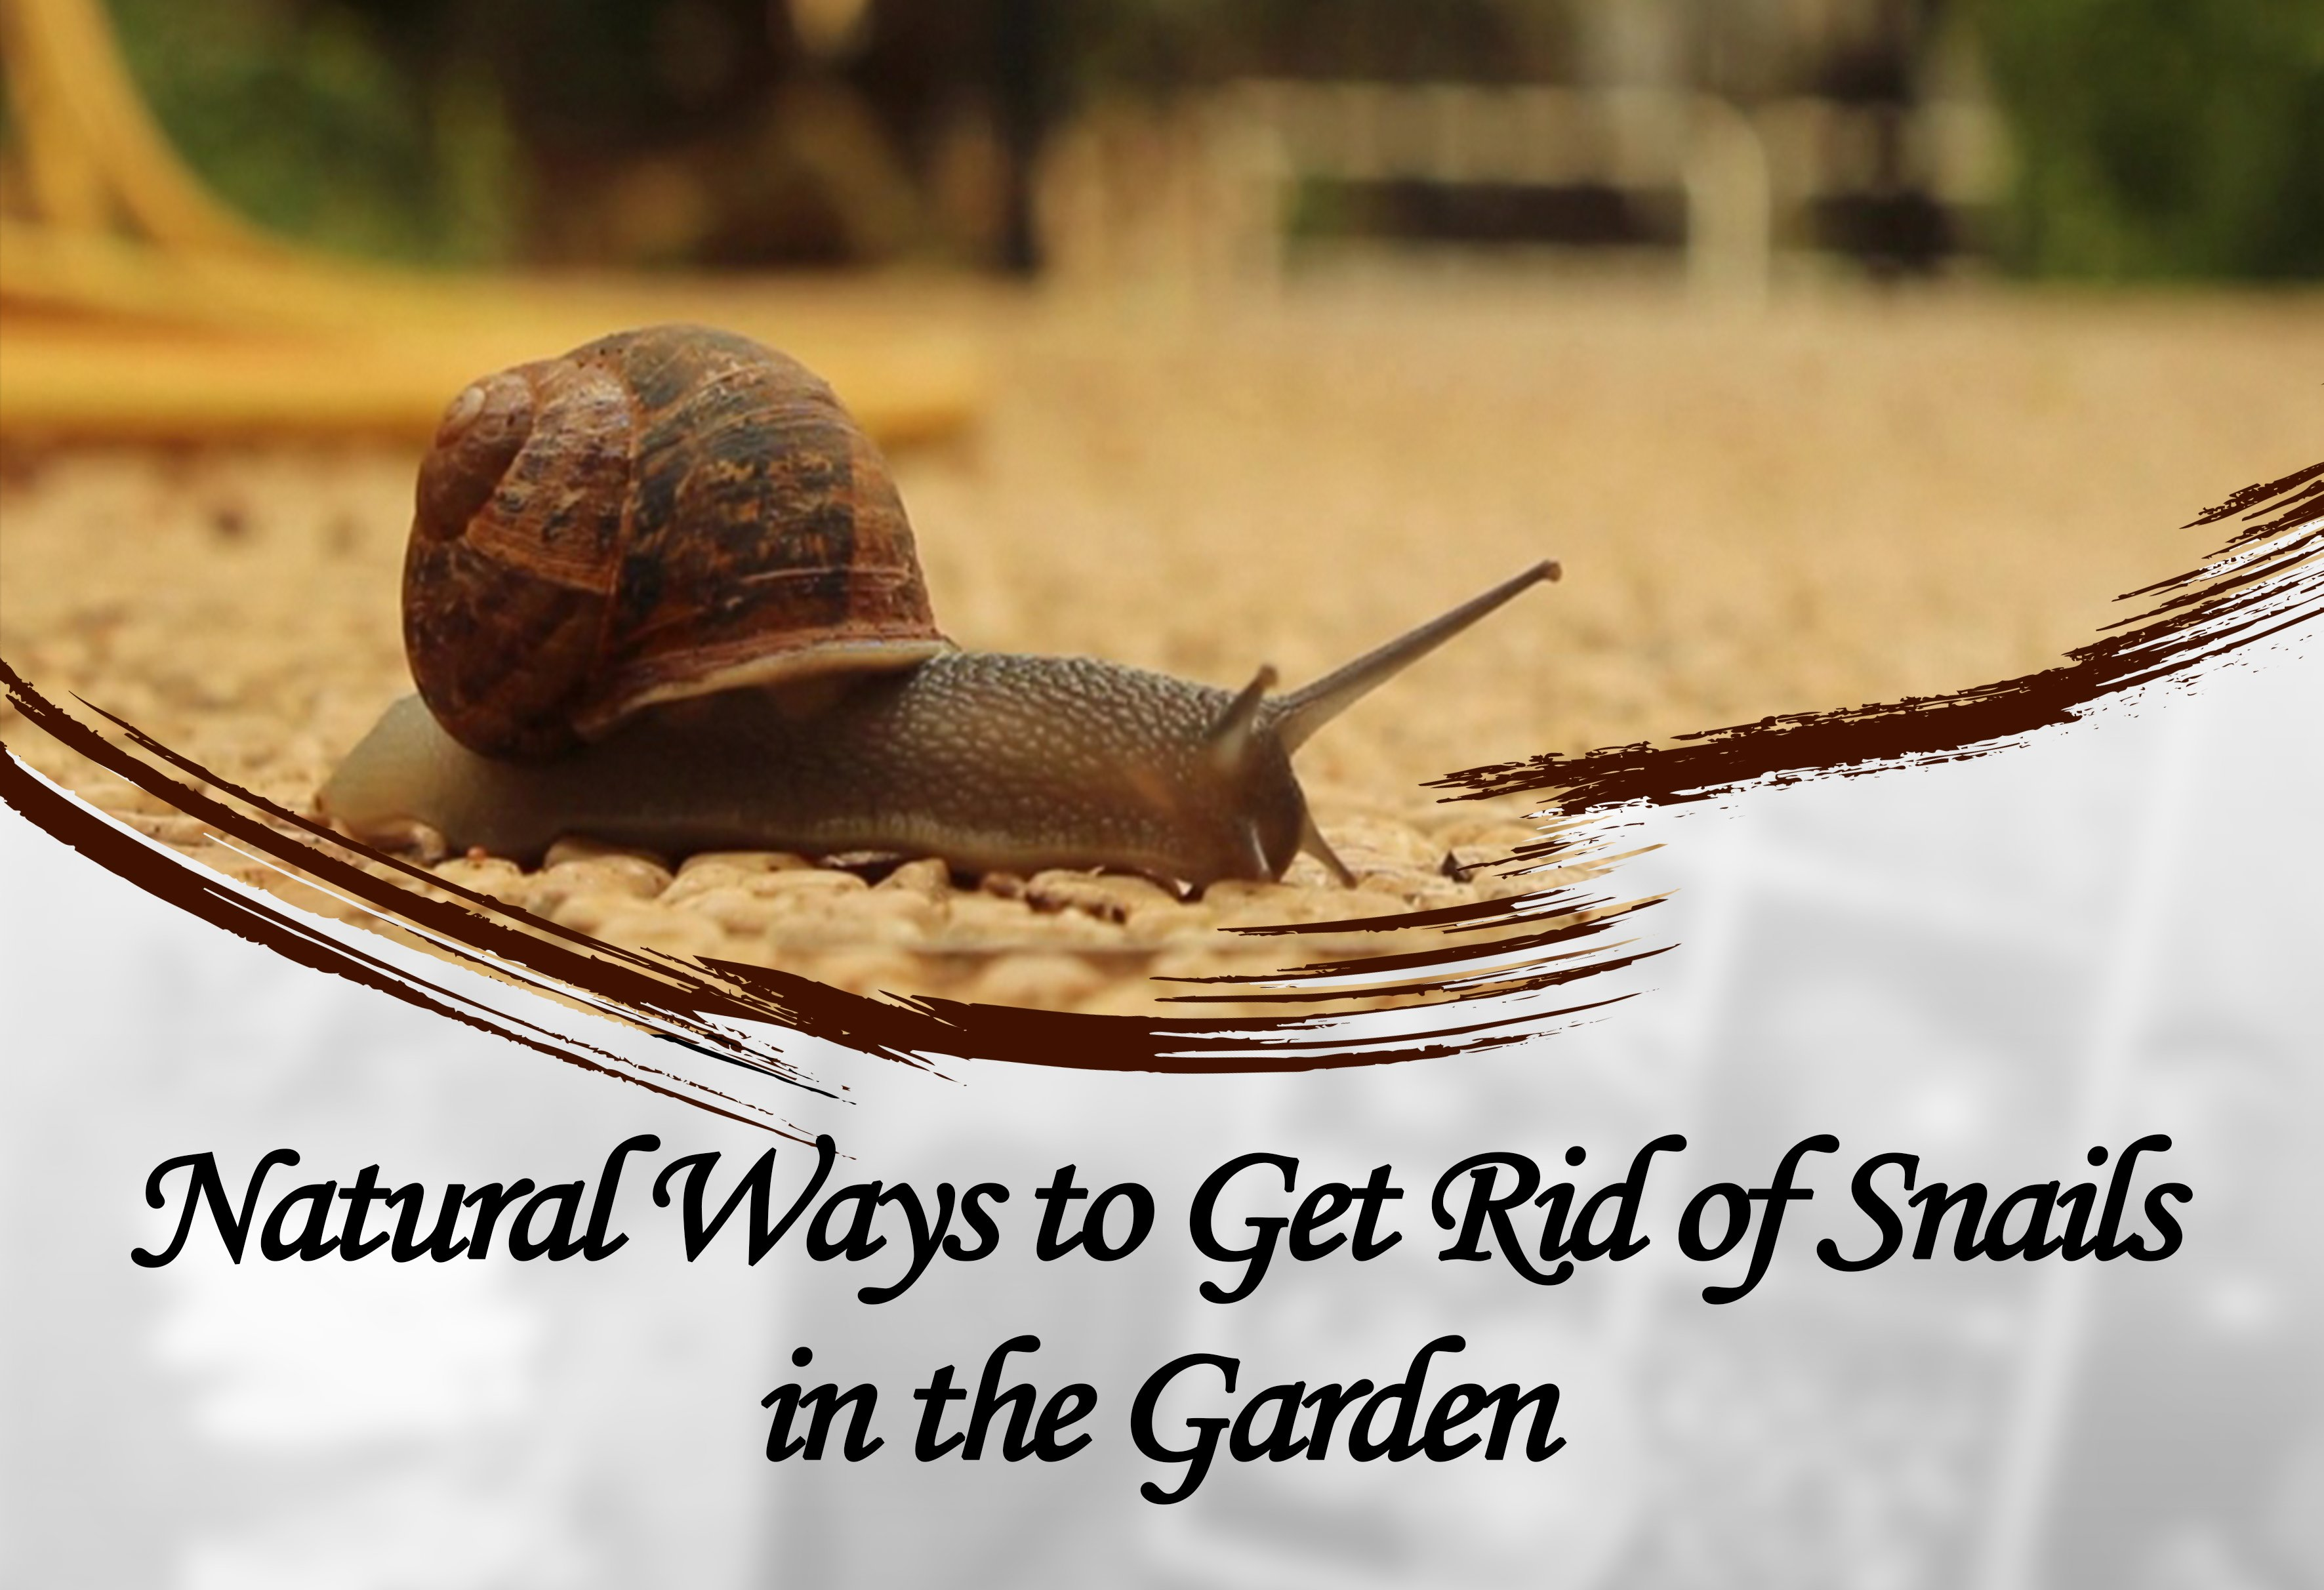 Natural Ways to Control Snails in the Garden(2018) - PestWiki